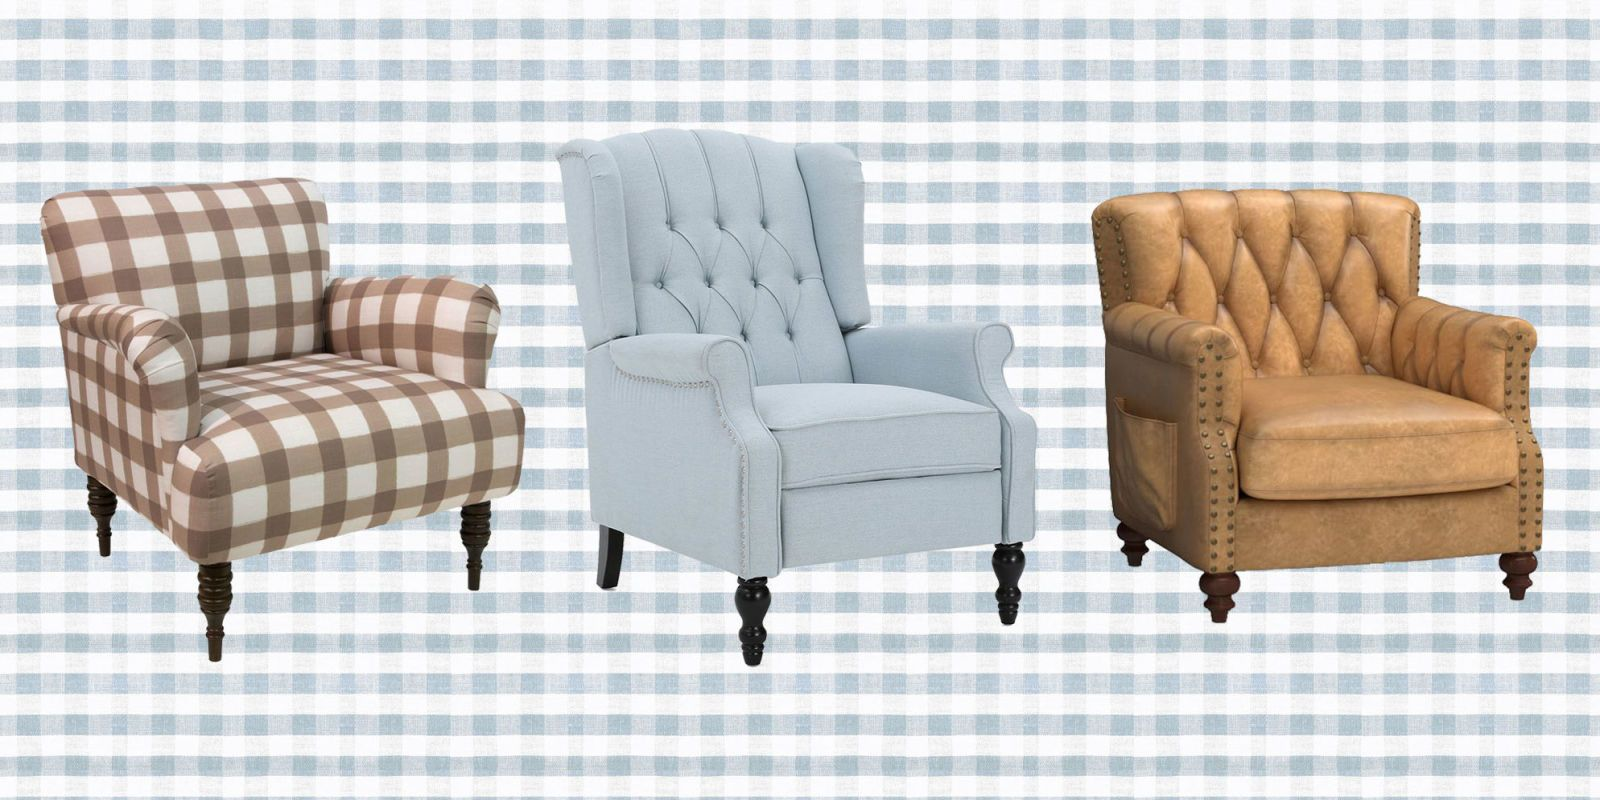 When It Comes To Decorating Your Living Room, You Shouldnu0027t Have To  Sacrifice Style For Comfort. And With These Great Chairs, You Can Have The  Best Of Both ...